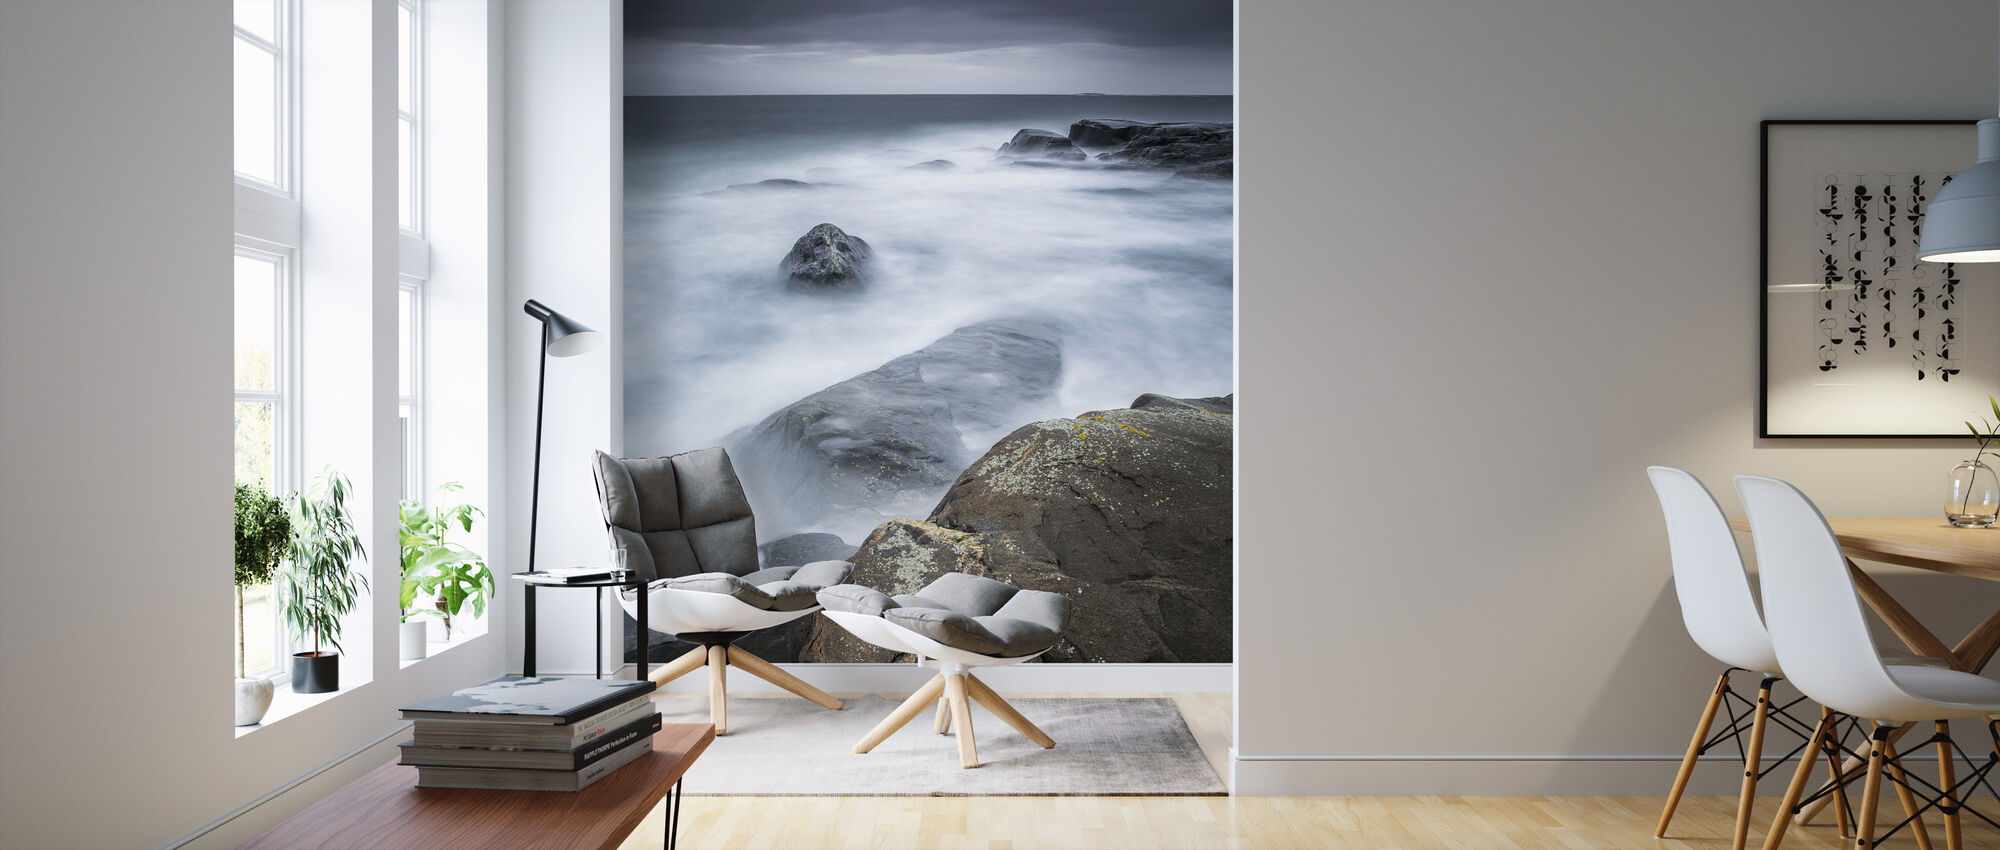 Hummerviken, Gothenburg - Sweden - Wallpaper - Living Room